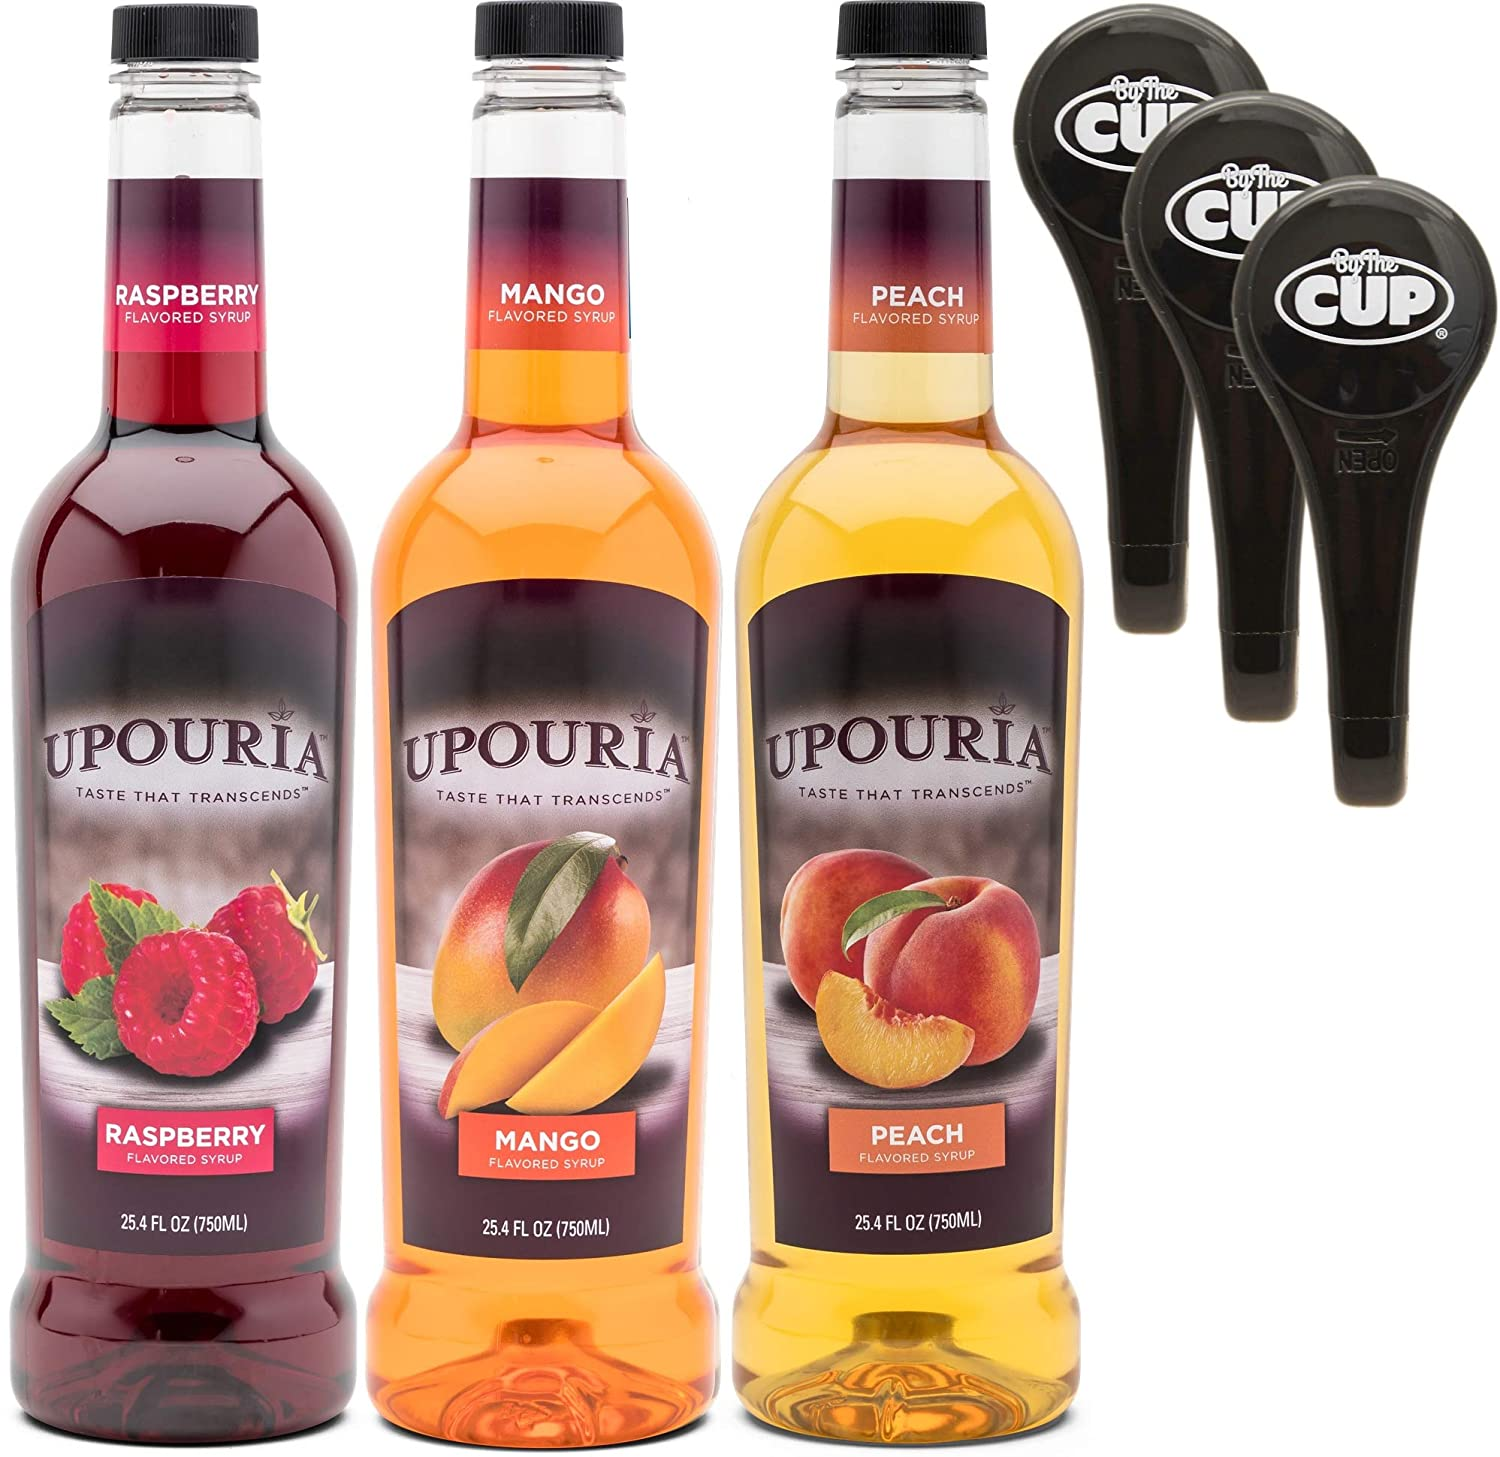 Upouria Raspberry, Mango, and Peach Coffee Syrup Flavoring Variety 750 mL Bottles with 3 - By The Cup Coffee Syrup Pumps